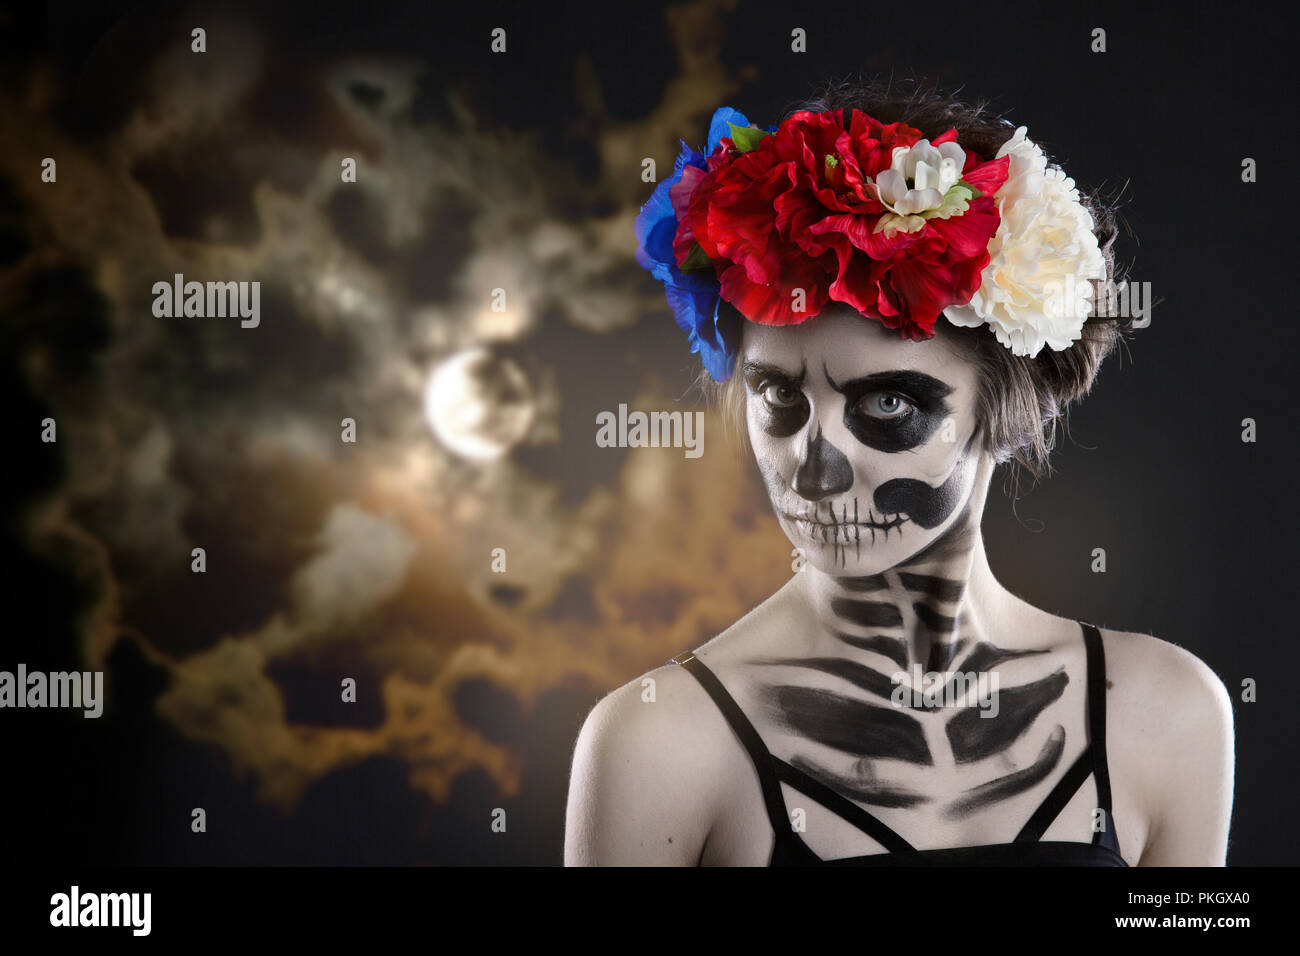 Woman Art Make Up Scary Skull Make Up For Halloween Face Art Body Art Is Painted Paints For Body Art Cosmetics Skin Horror Beauty Nightmares Stock Photo Alamy